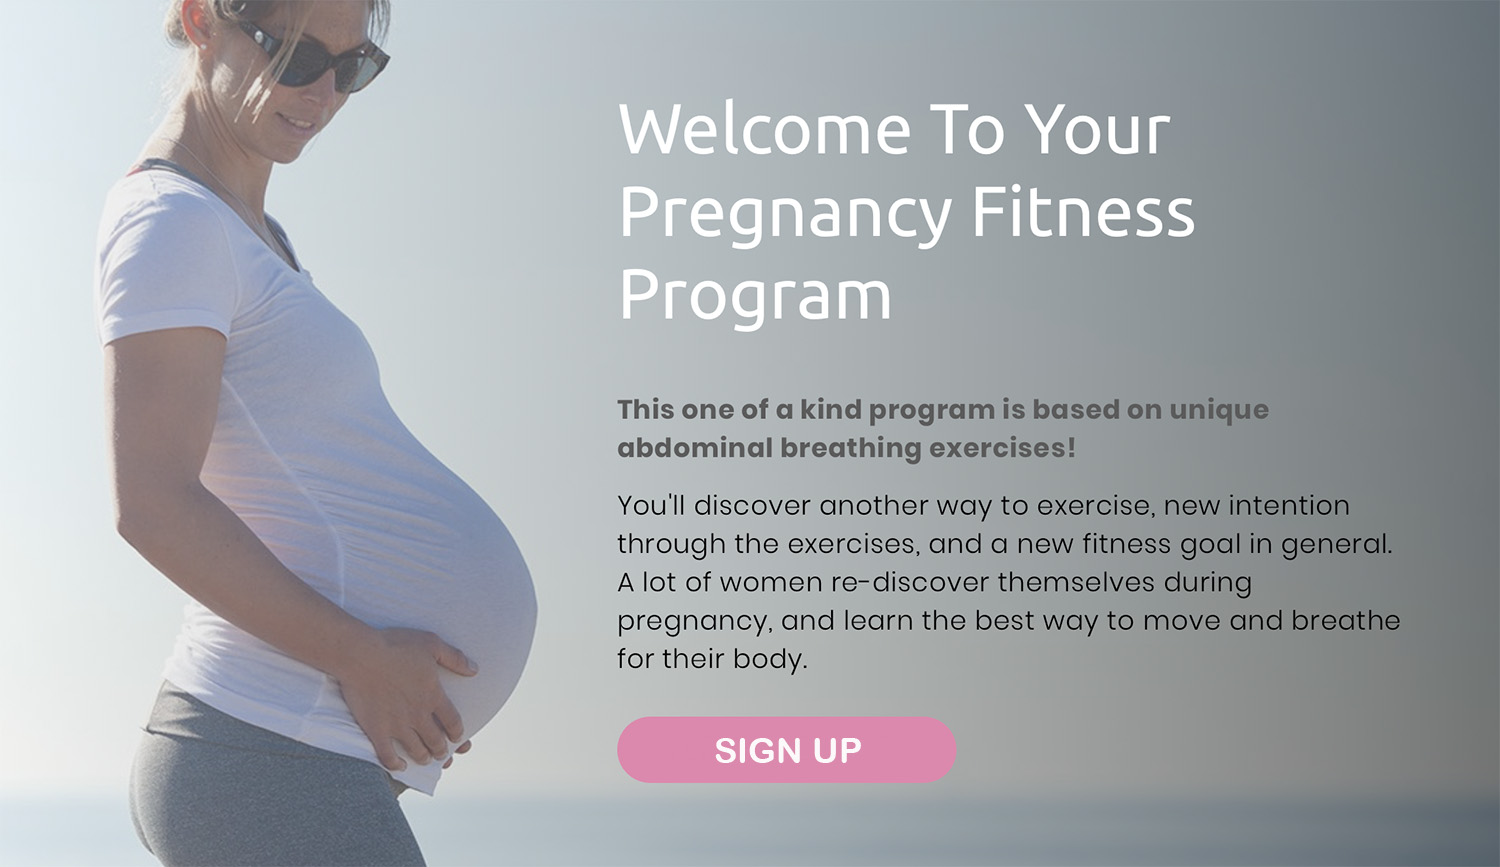 Pregnancy workout routine & wellness plan -  First trimester exercises  to 40 weeks!